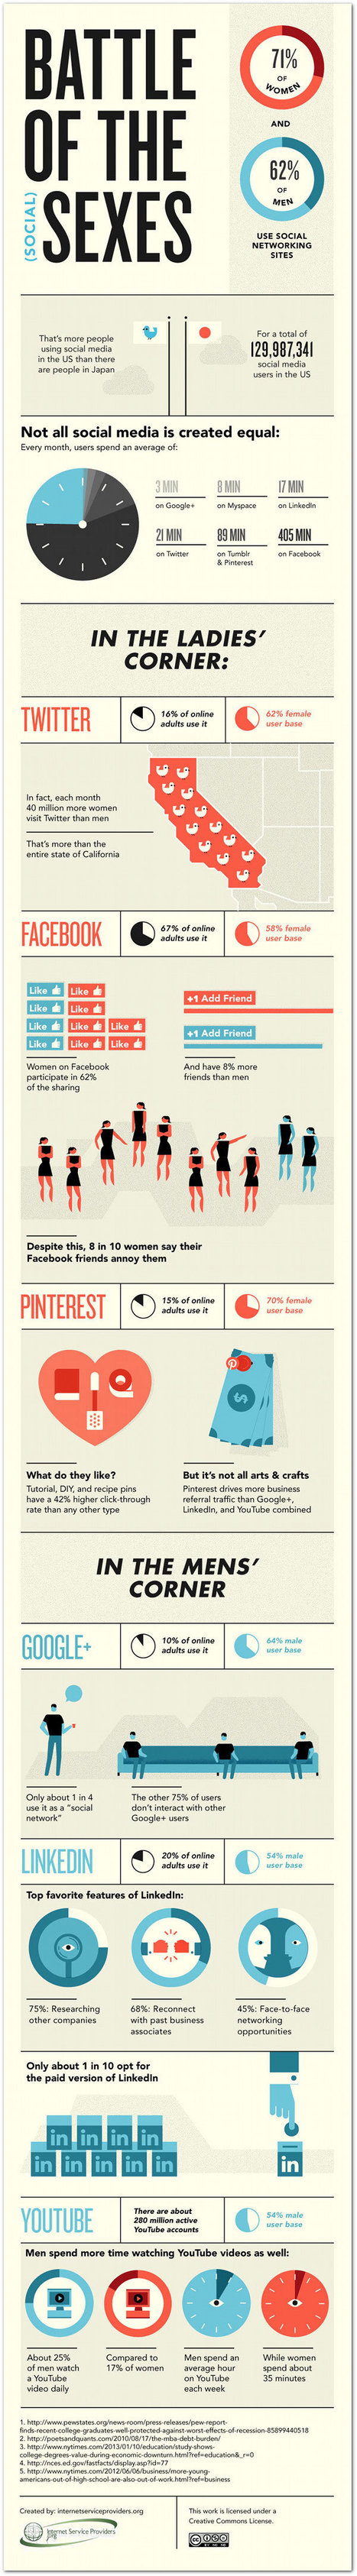 How Men and Women Use Social Media Differently (Infographic) | Gender in the Media | Scoop.it